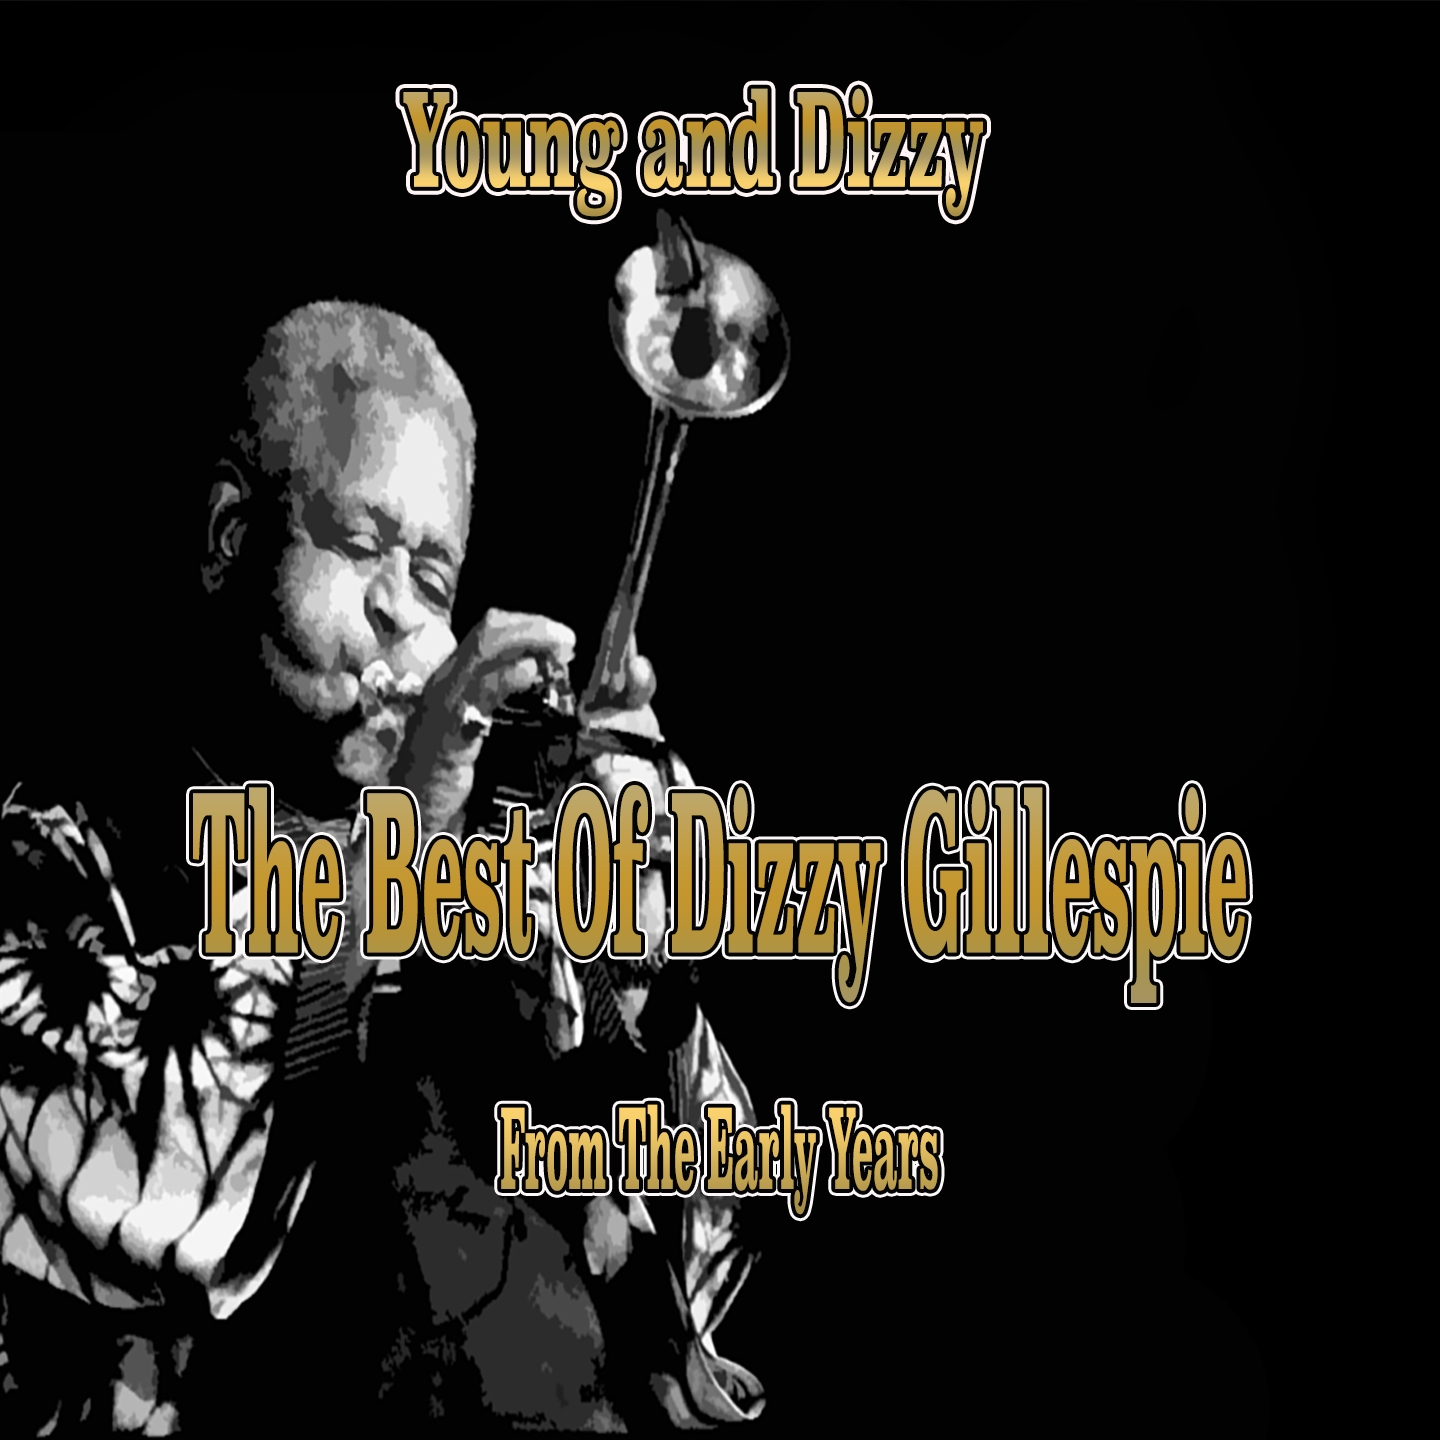 Young and Dizzy: The Best of Dizzy Gillespie from the Early Years